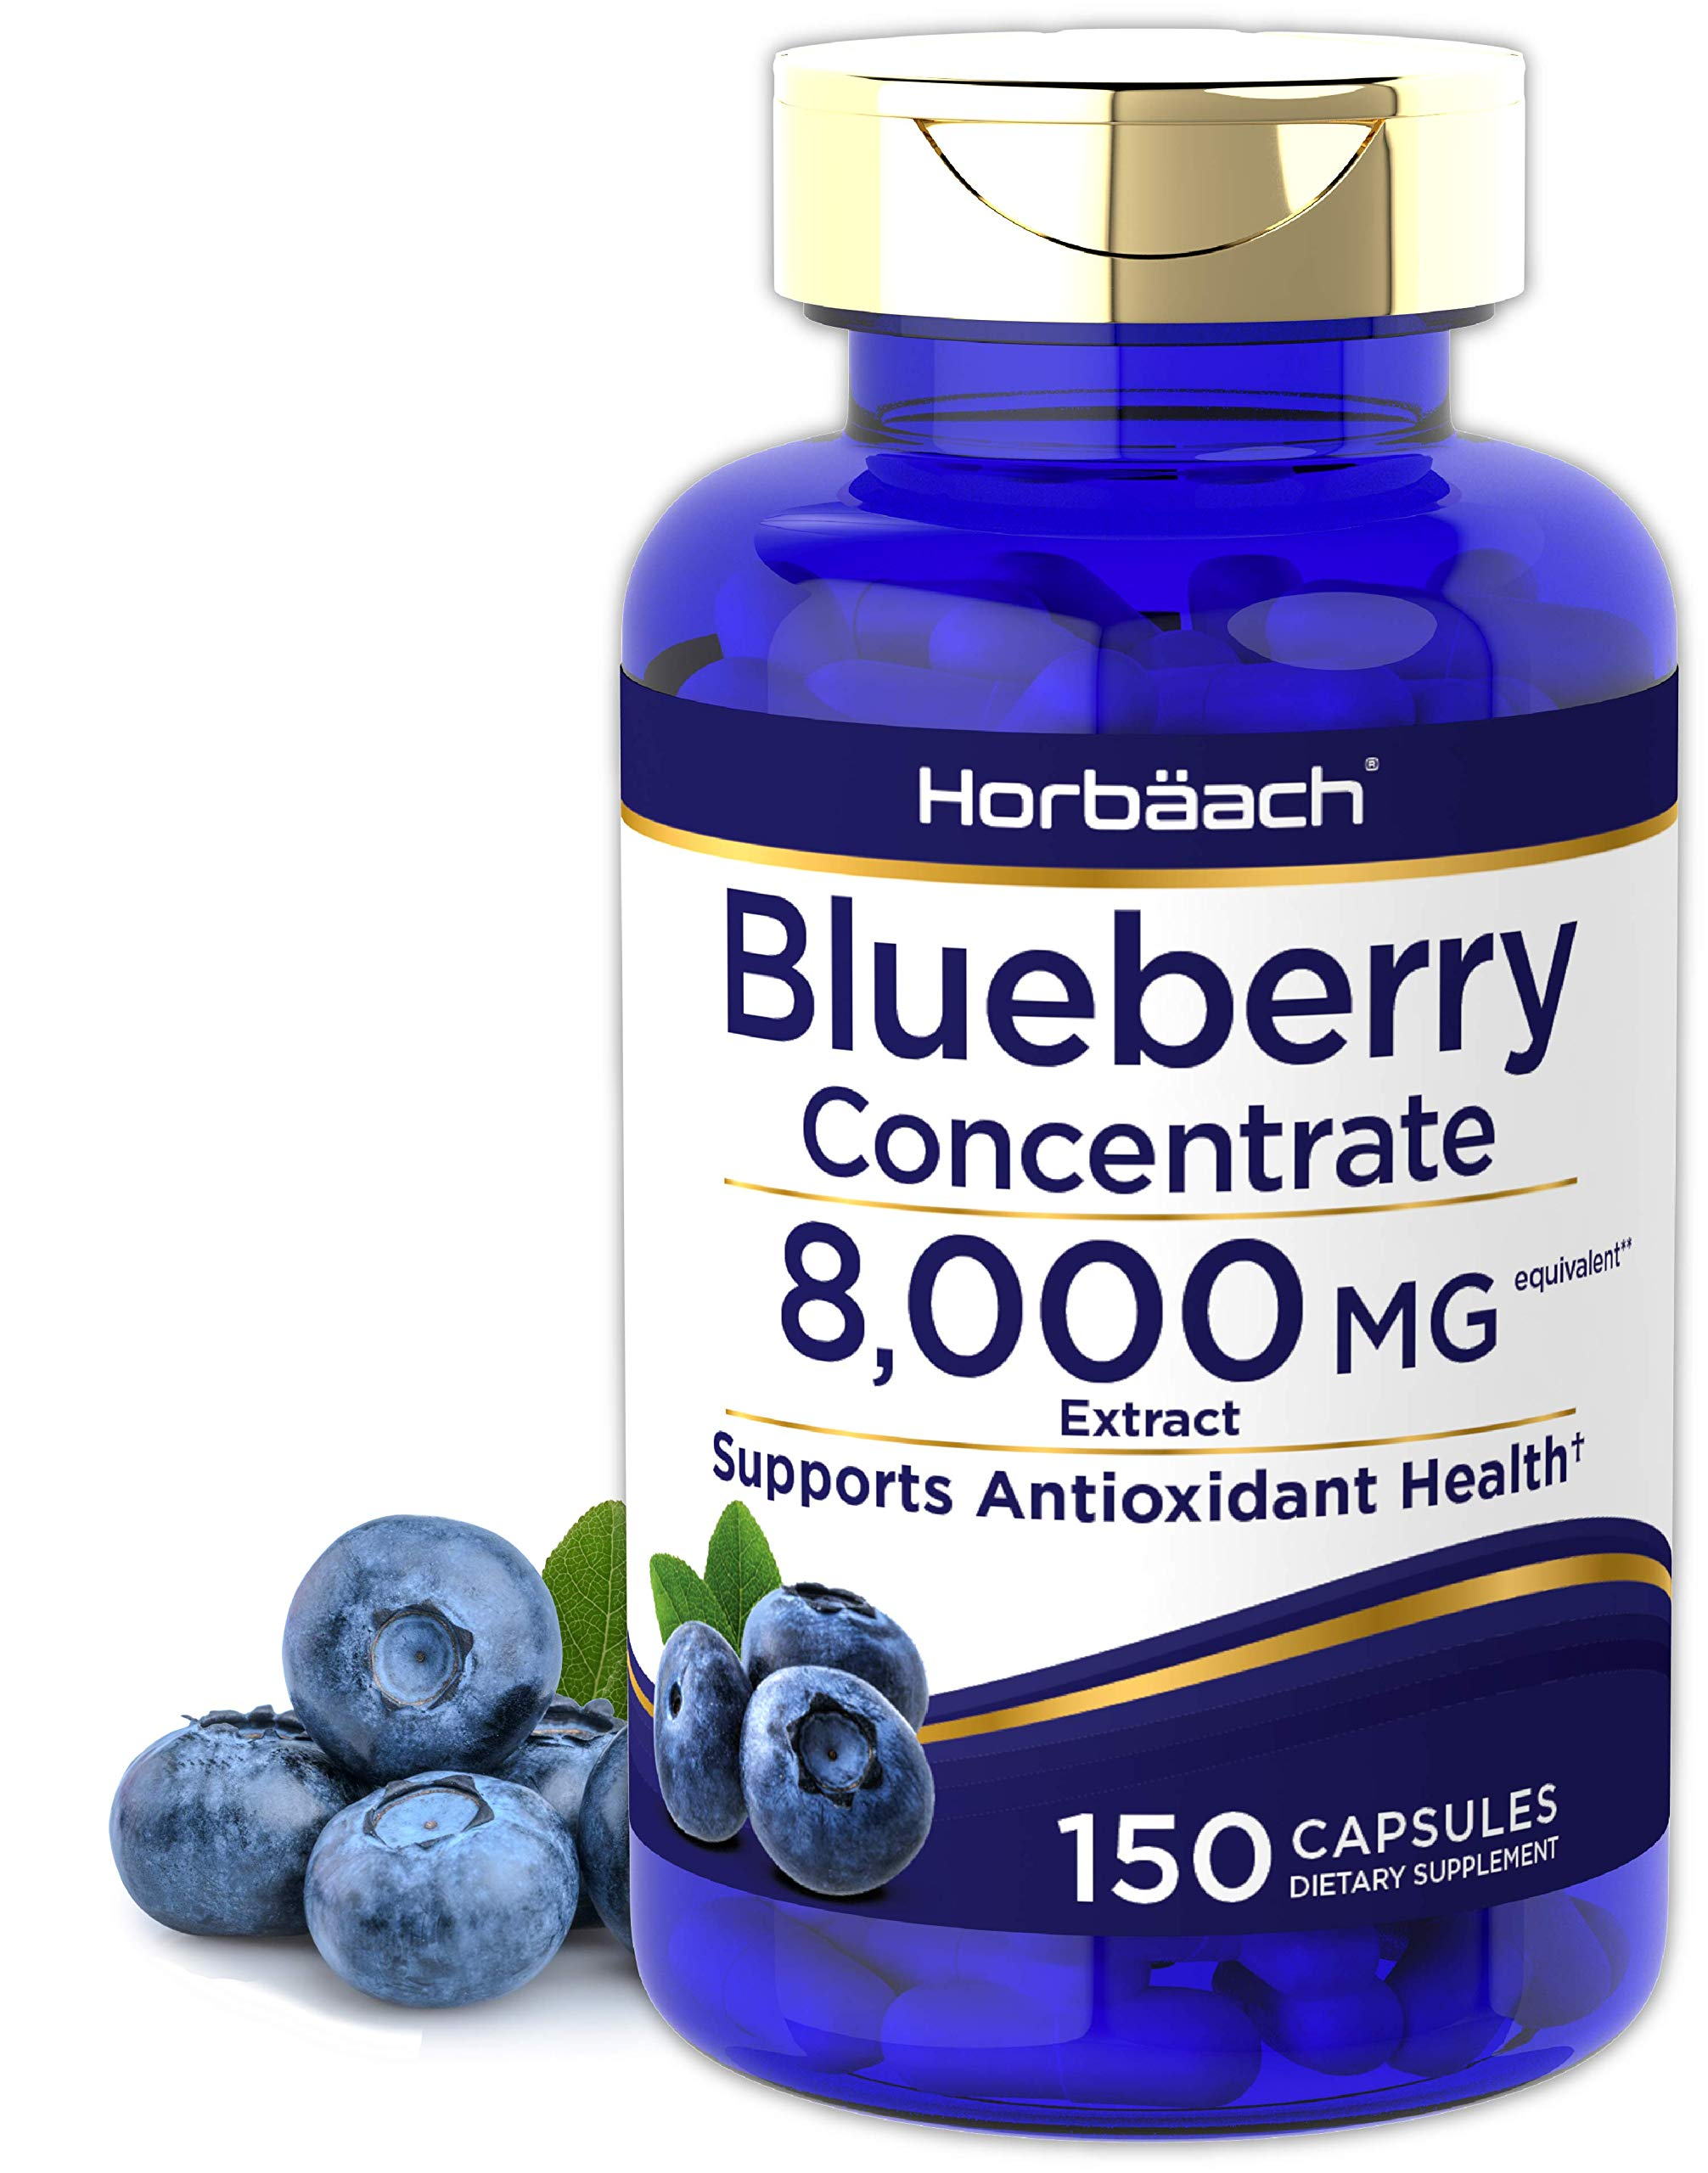 Horbaach Blueberry Extract 8000 mg | 150 Capsules | Blueberry Concentrate Supplement | Non-GMO, Gluten Free